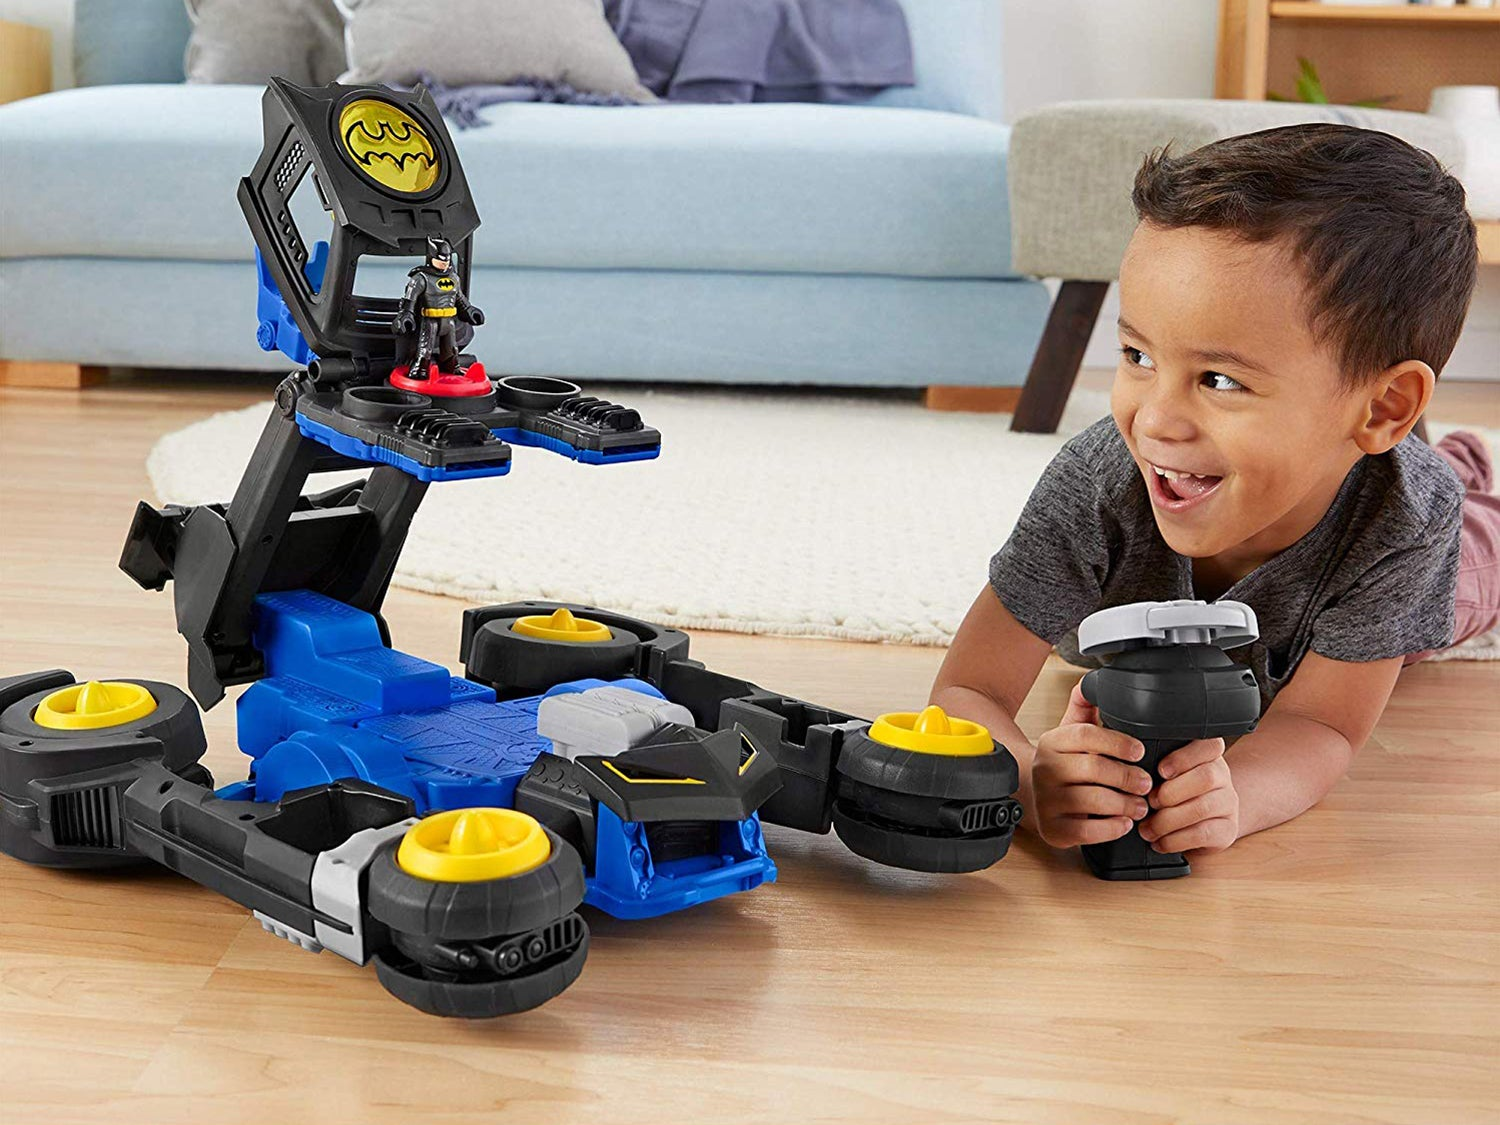 Kid playing with batman toys